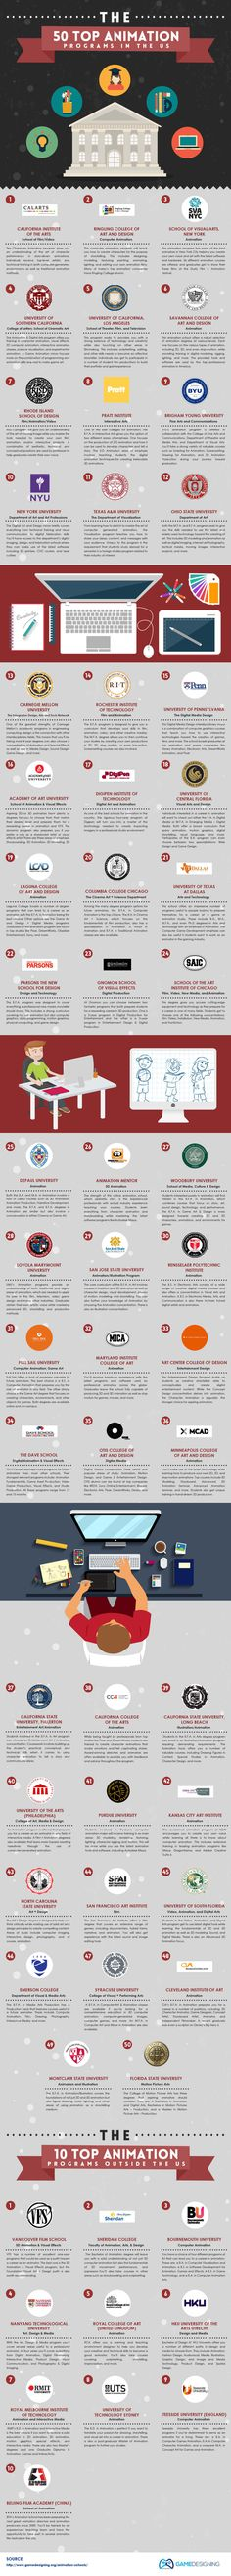 The team at GameDesigning.org has collected and the ranked the very best schools for aspiring animators to get their start. The 50 US based programs listed offer the very best professors, hands-on training, job placement, and salary expectations. #infographic